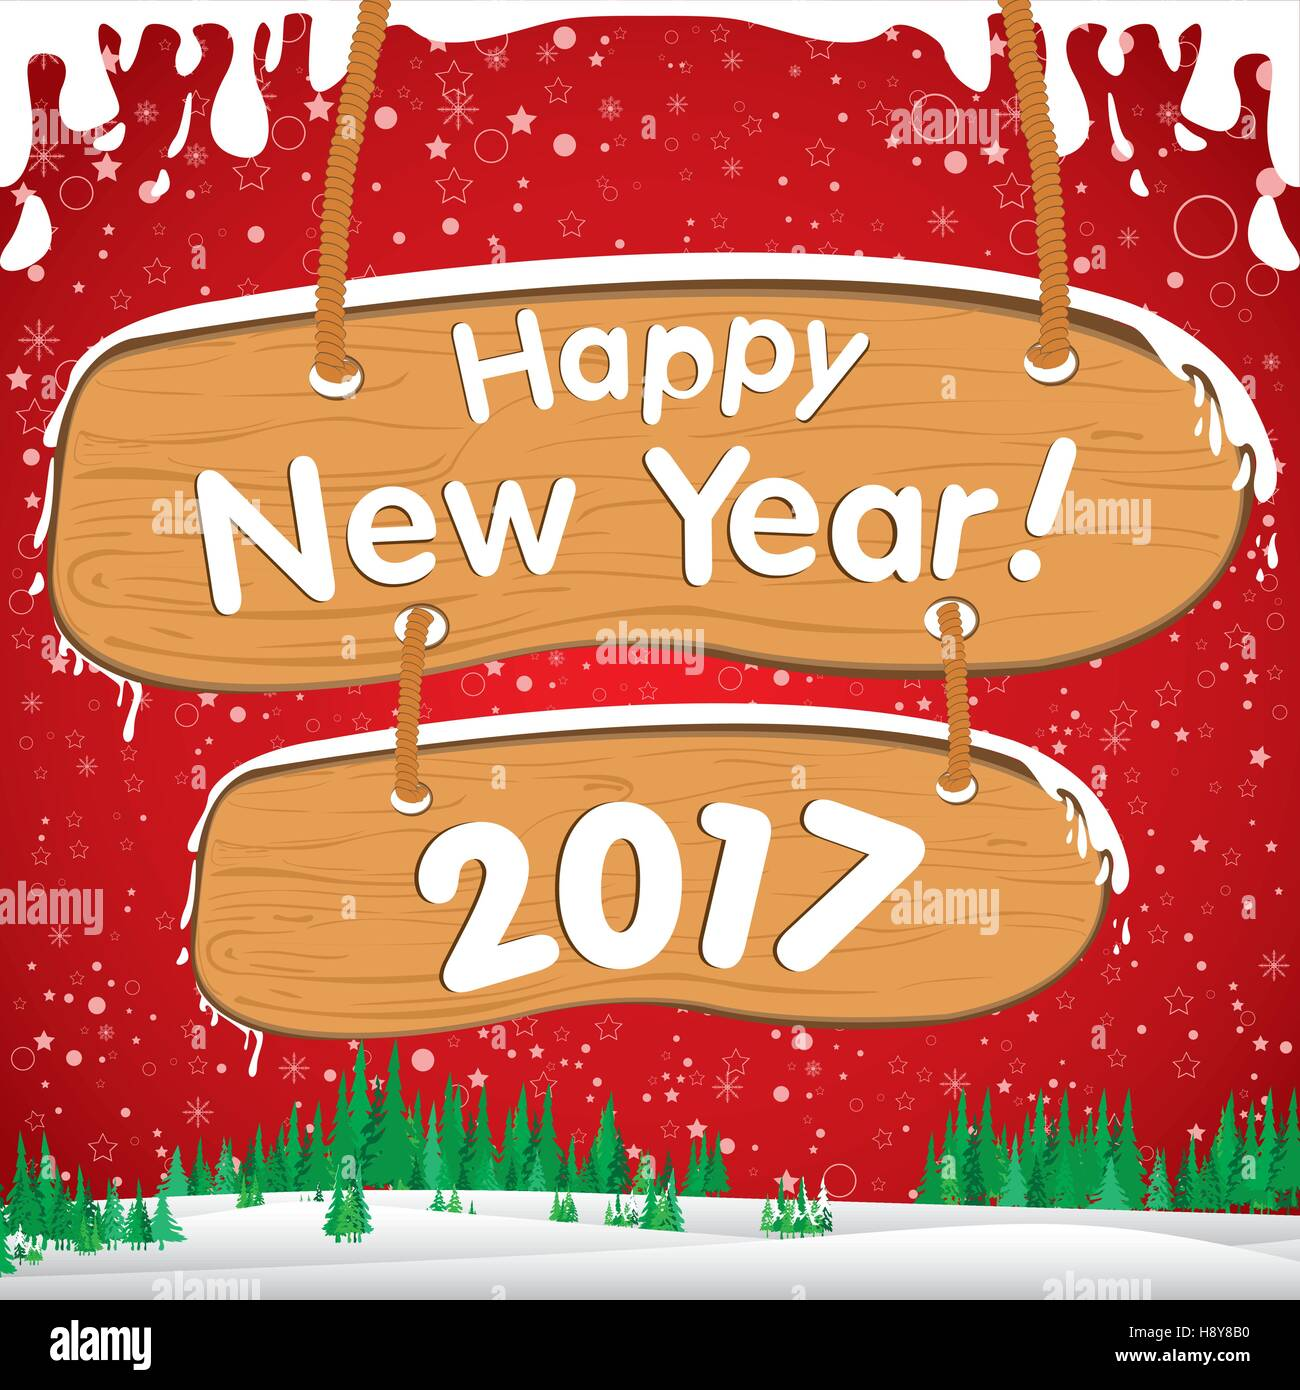 happy new year christmas snow christmas tree flake wooden sign vector year illustration decoration holiday xmas new